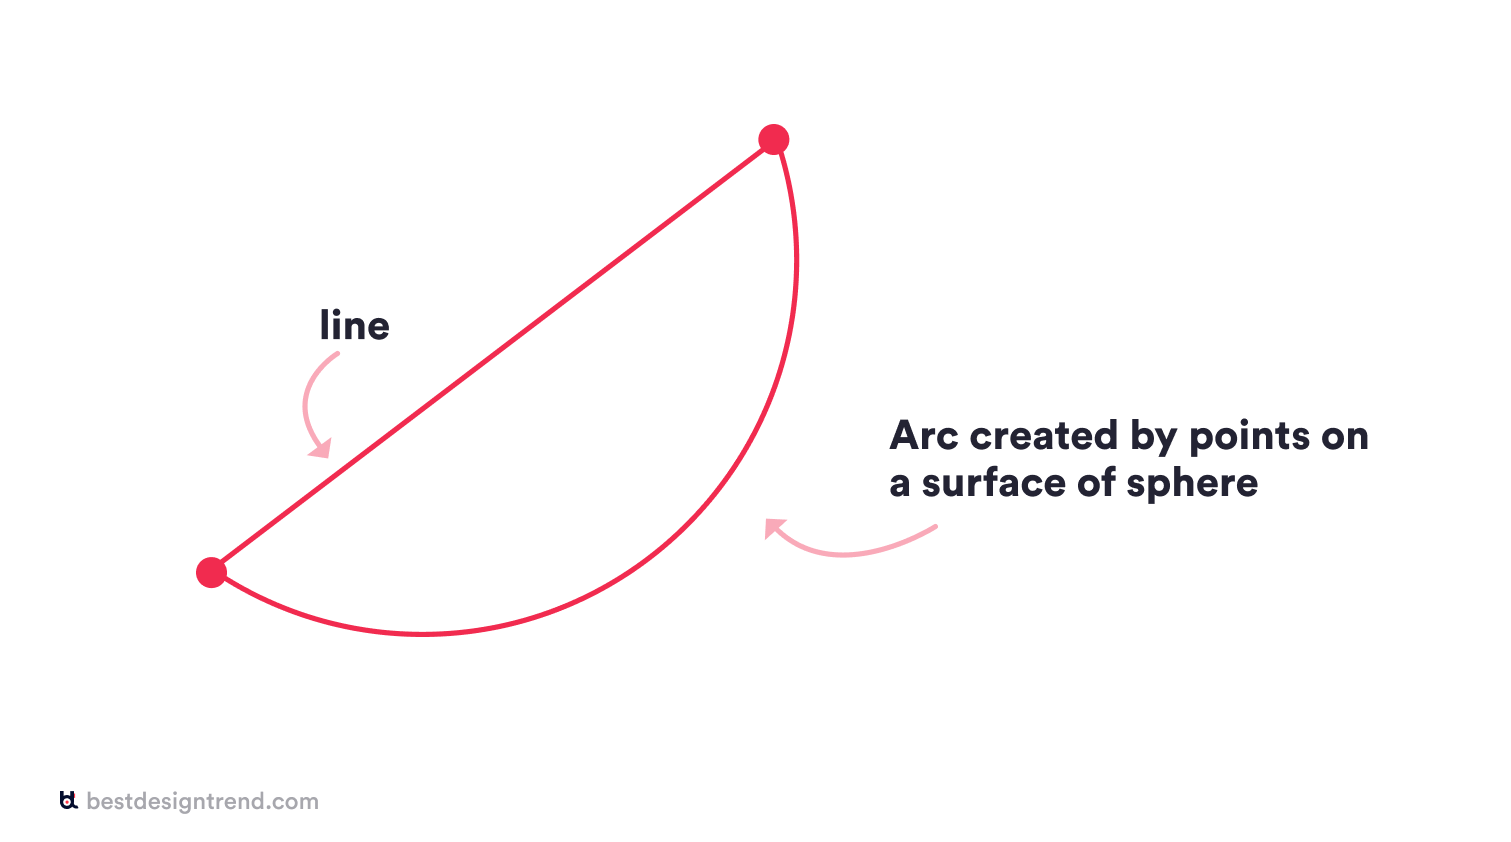 arc is also a type od line created by points on sphere surface